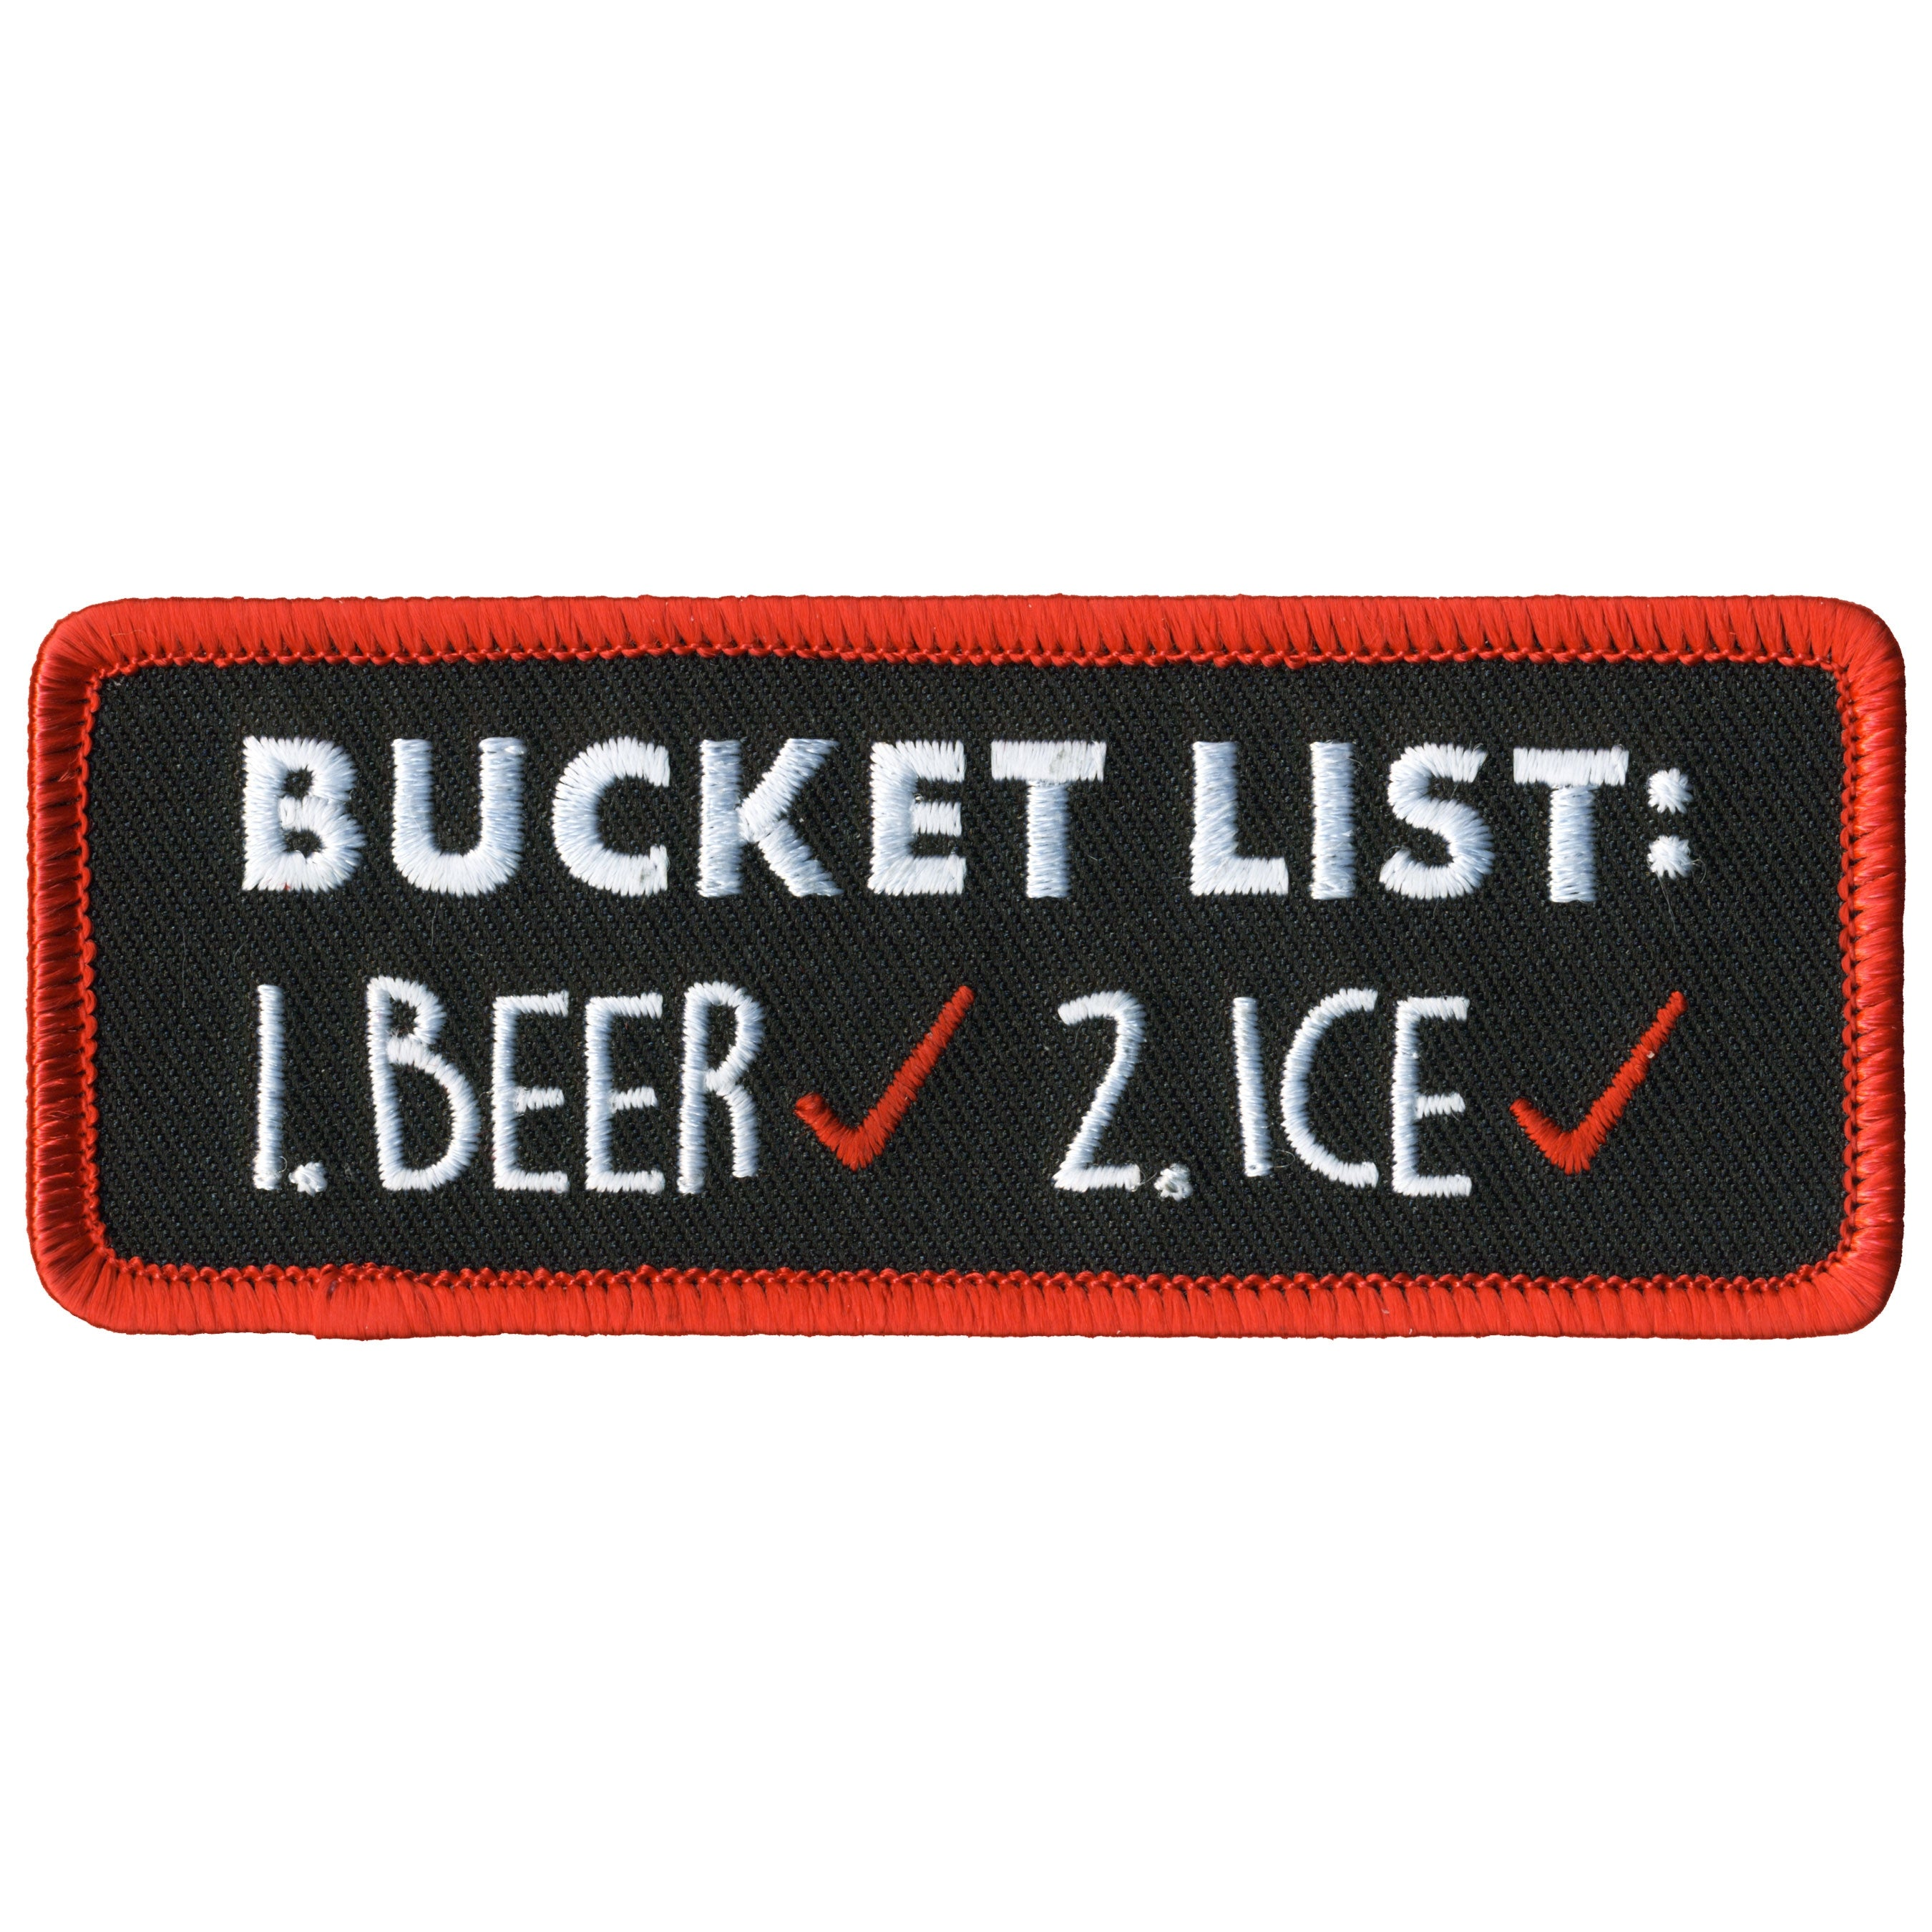 Hot Leather Bucket List Patch